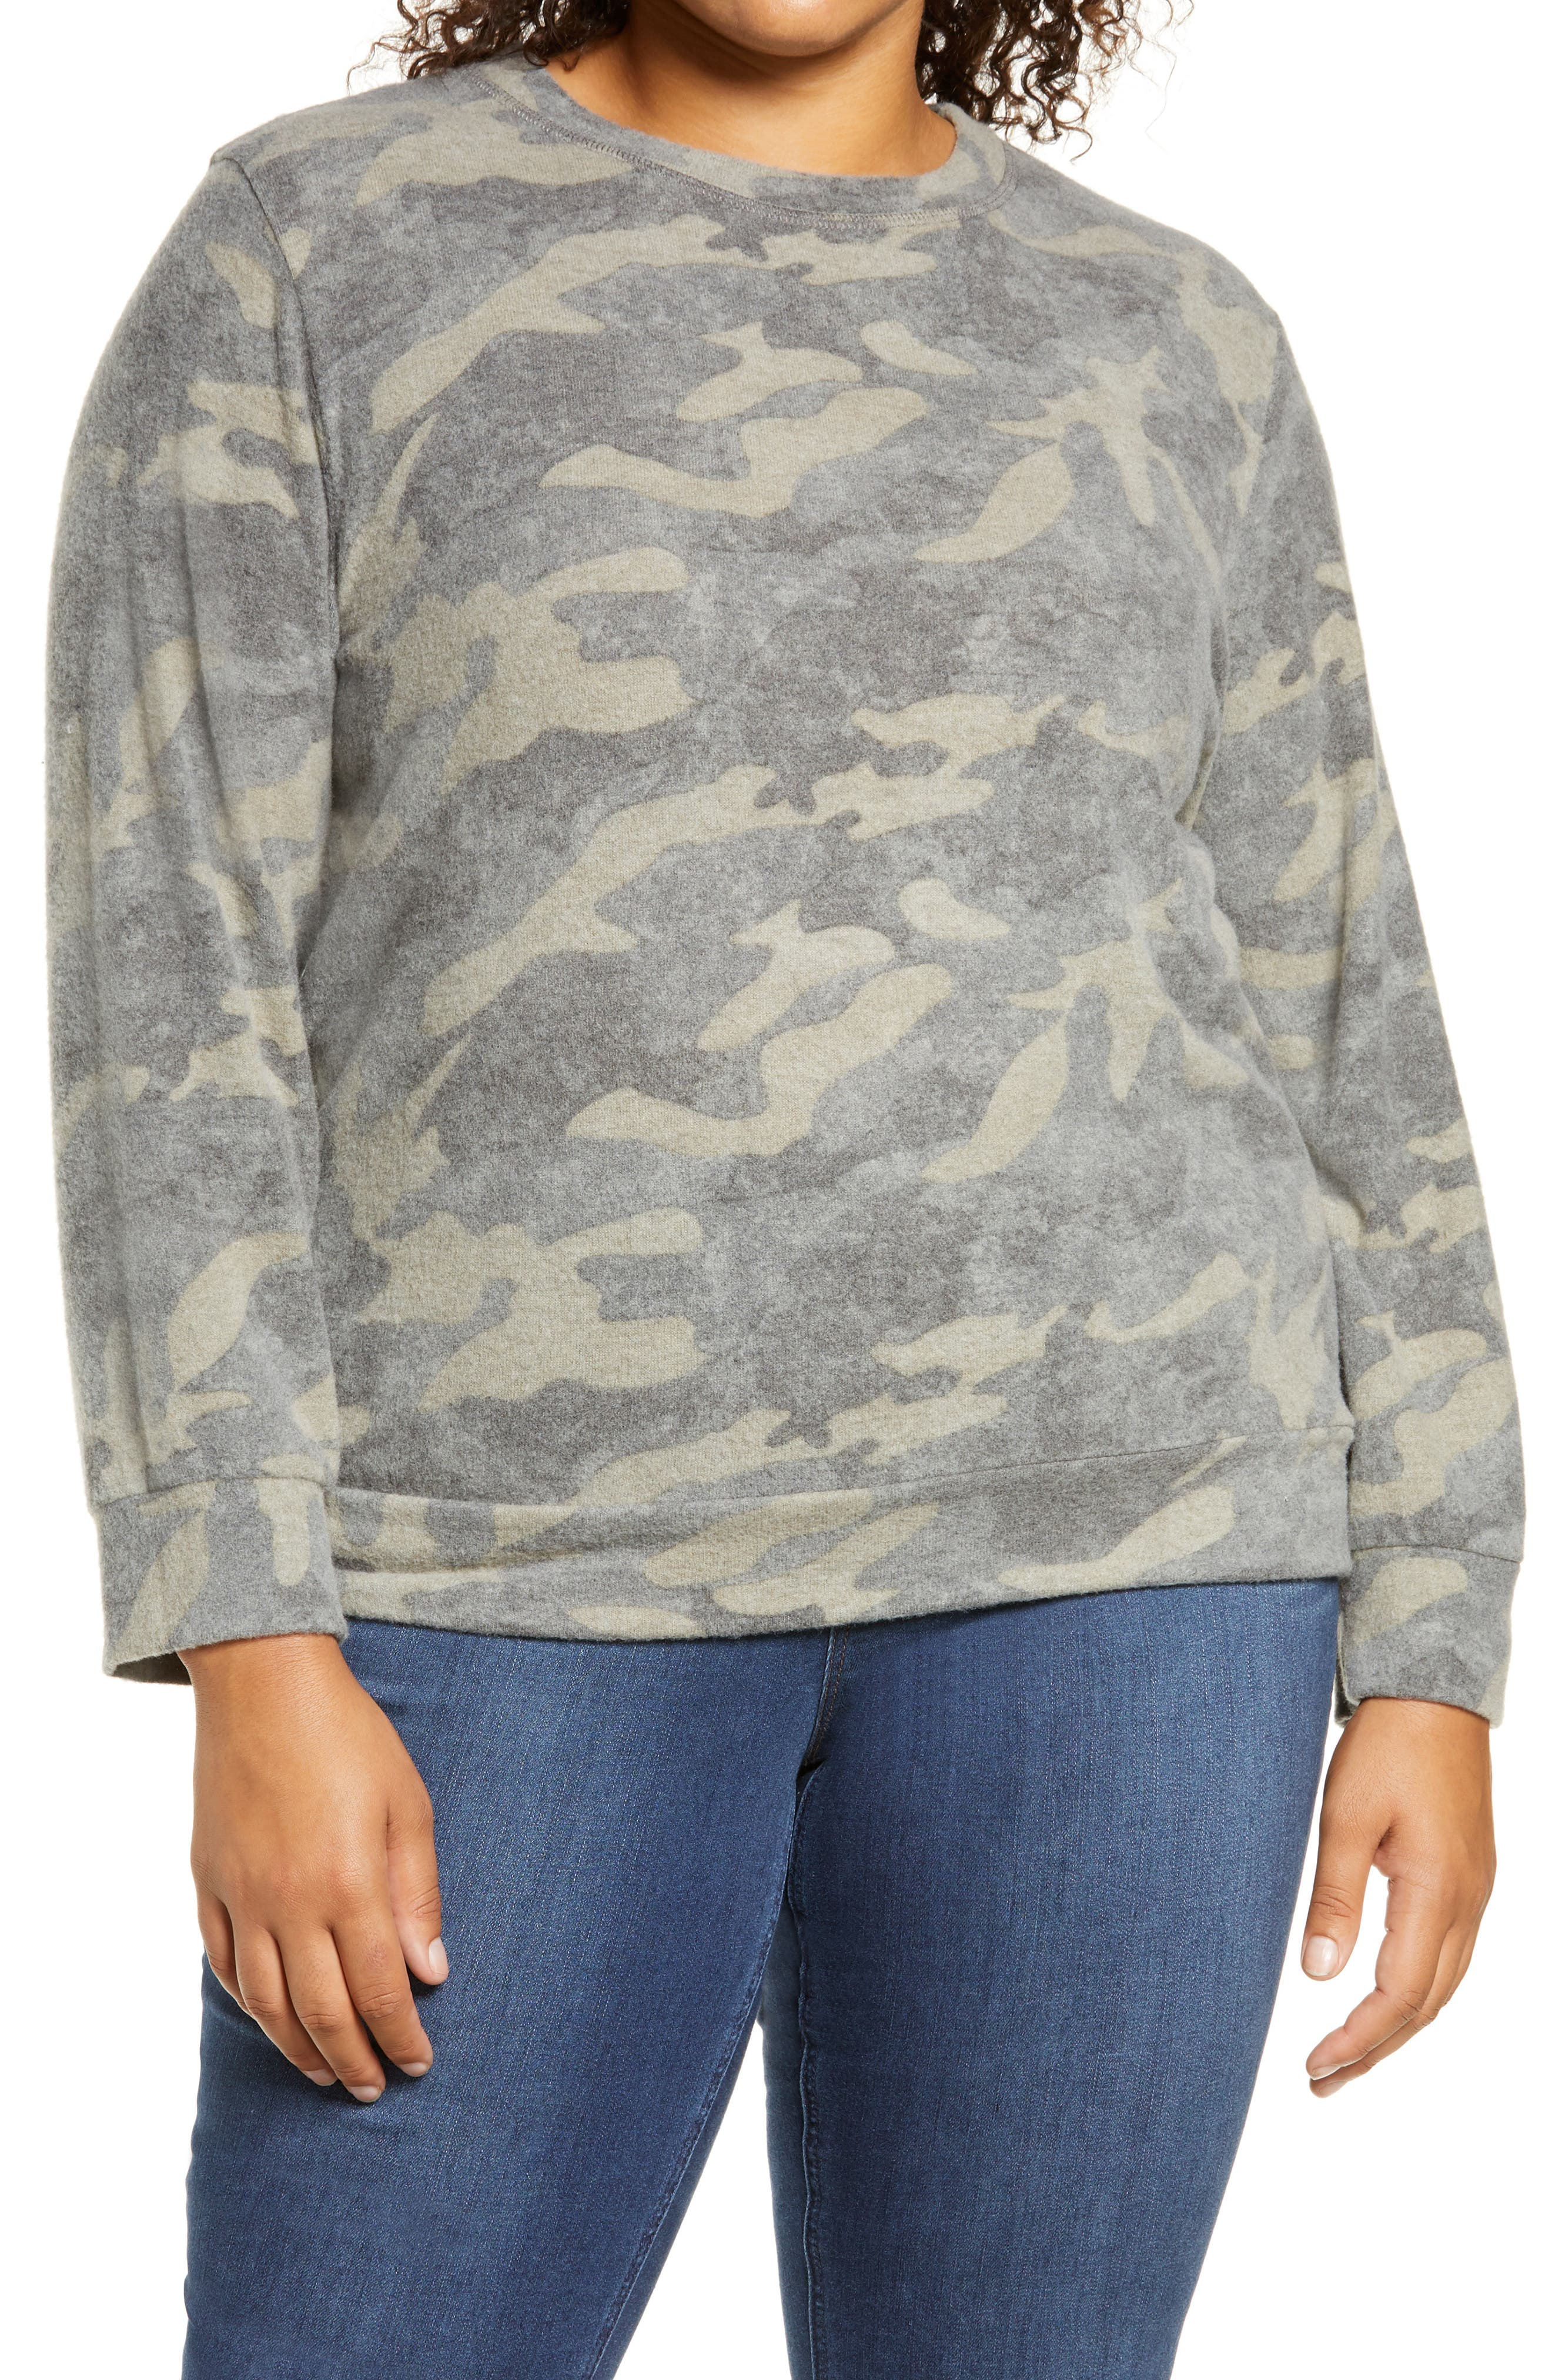 A cool camo design emboldens this brushed crewneck pullover that\\\'s ideal for the weekend. Style Name: Loveappella Camo Crewneck Pullover (Plus Size). Style Number: 6142437. Available in stores.